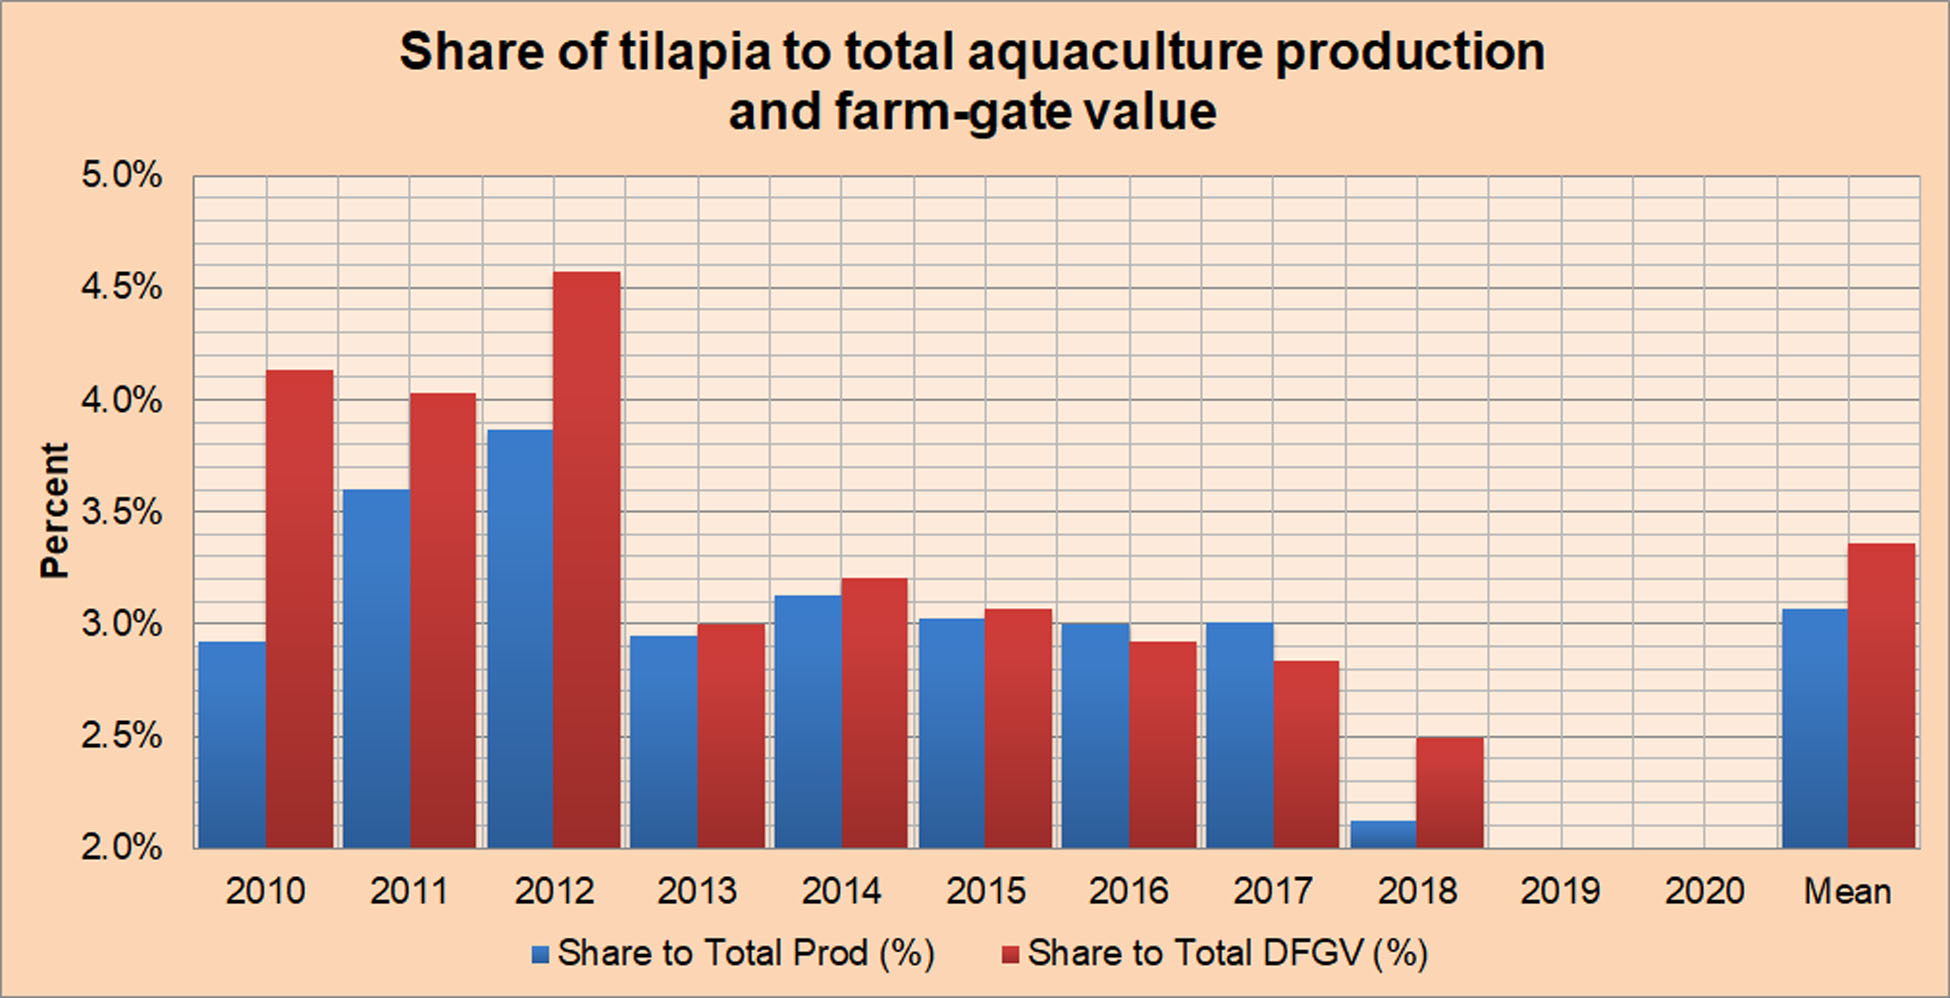 Share of Tilapia to Total Aquaculture Production